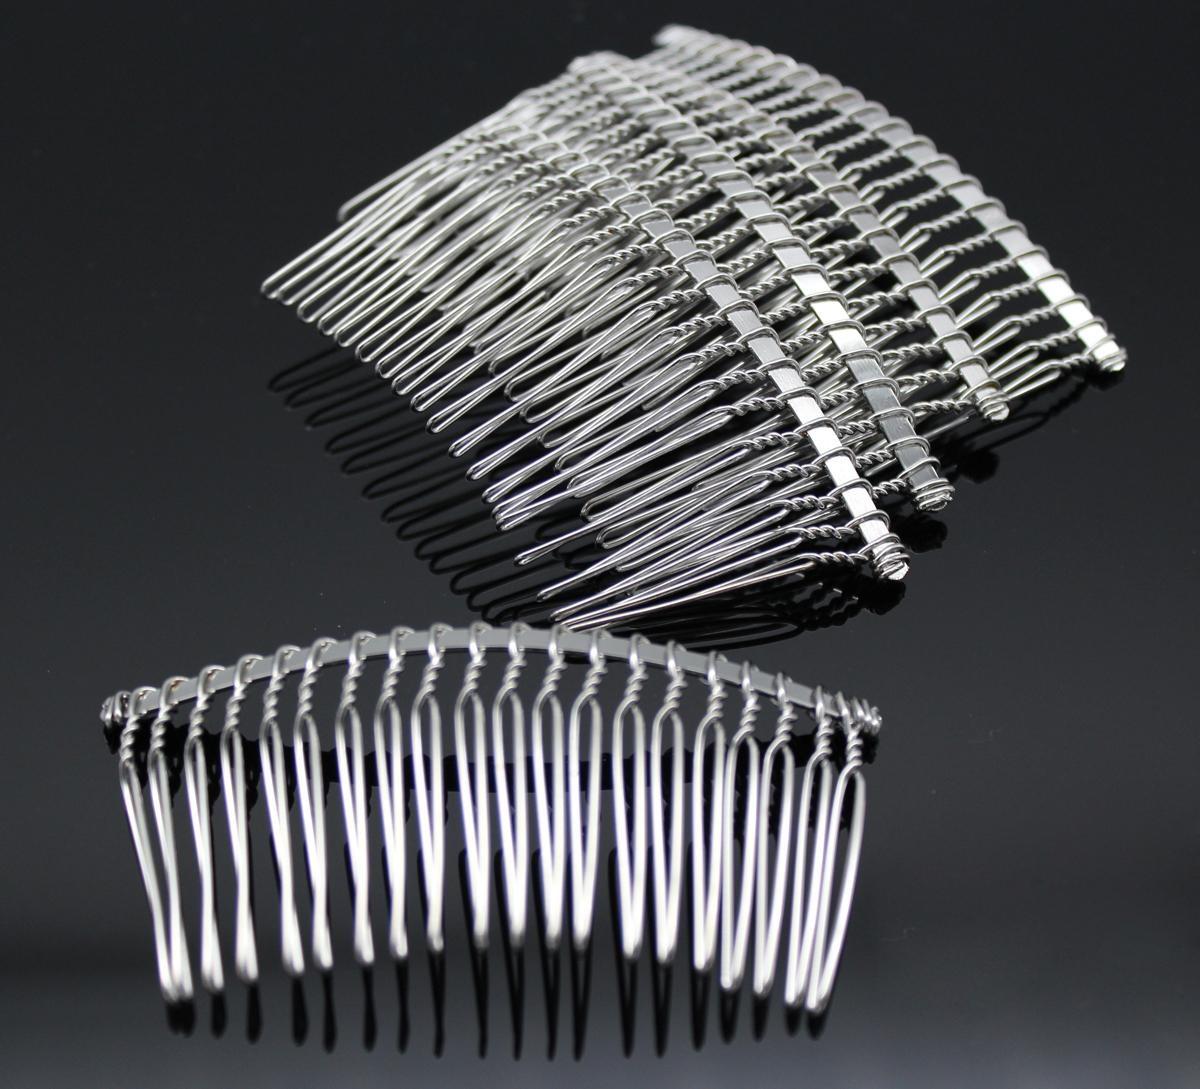 Silver metal hair side combs clips 80mm w 20 teeth for diy for Metal hair combs for crafts